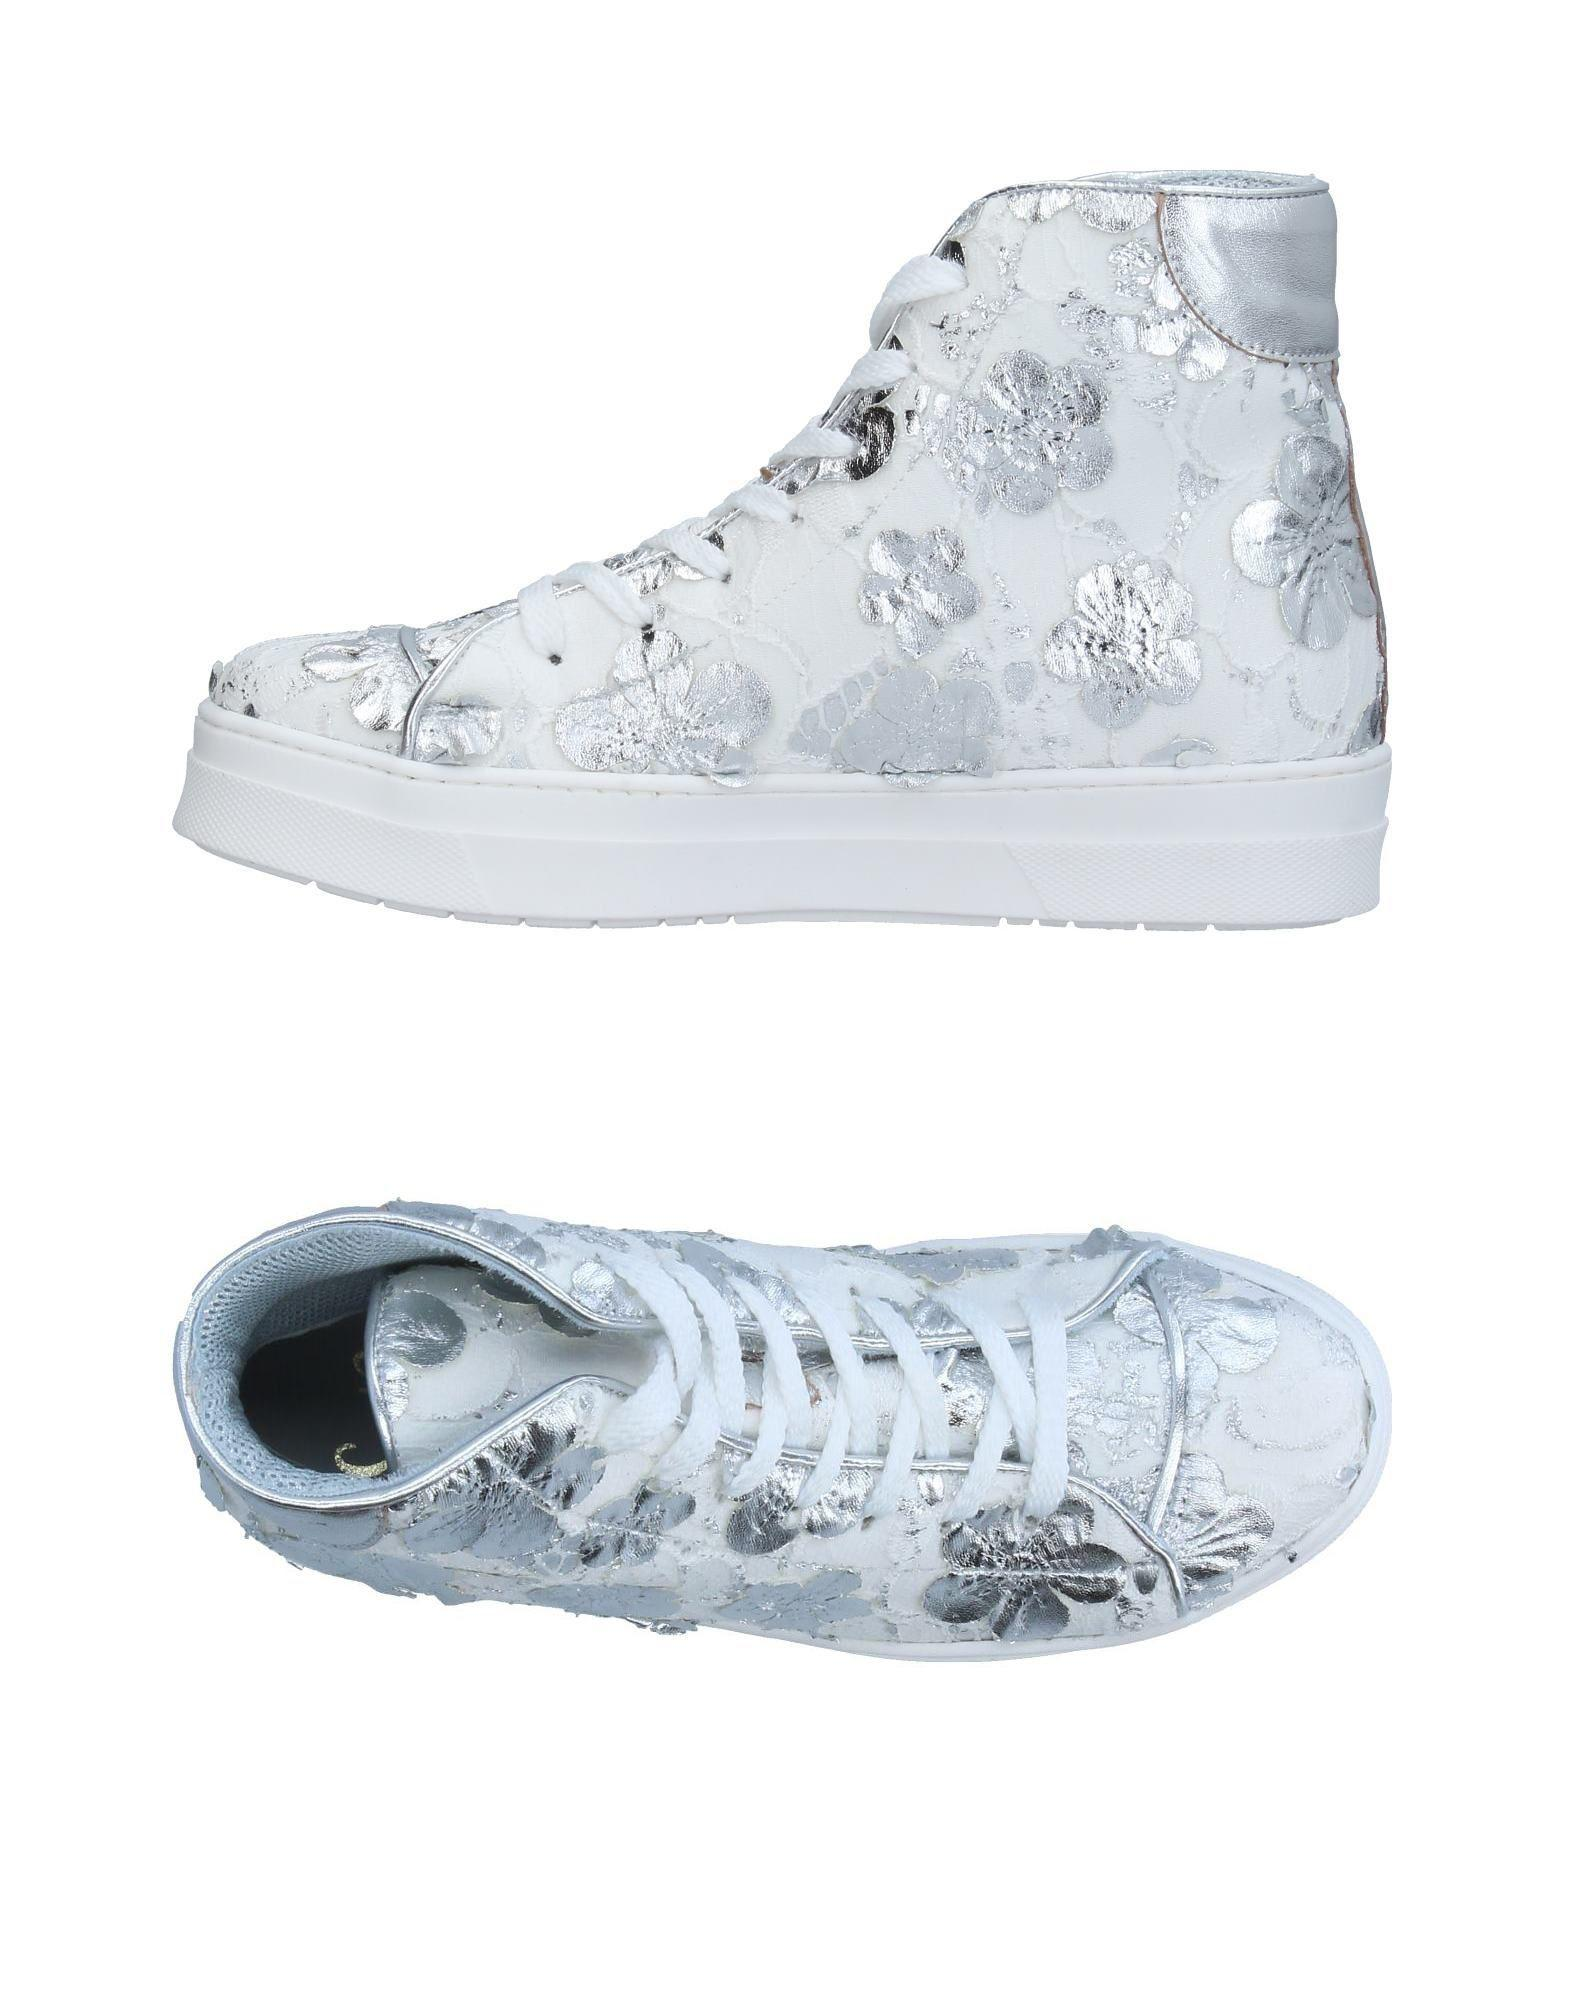 SGN GIANCARLO PAOLI Sneakers new sale online low cost online wholesale price discount explore ovpqVDJ3